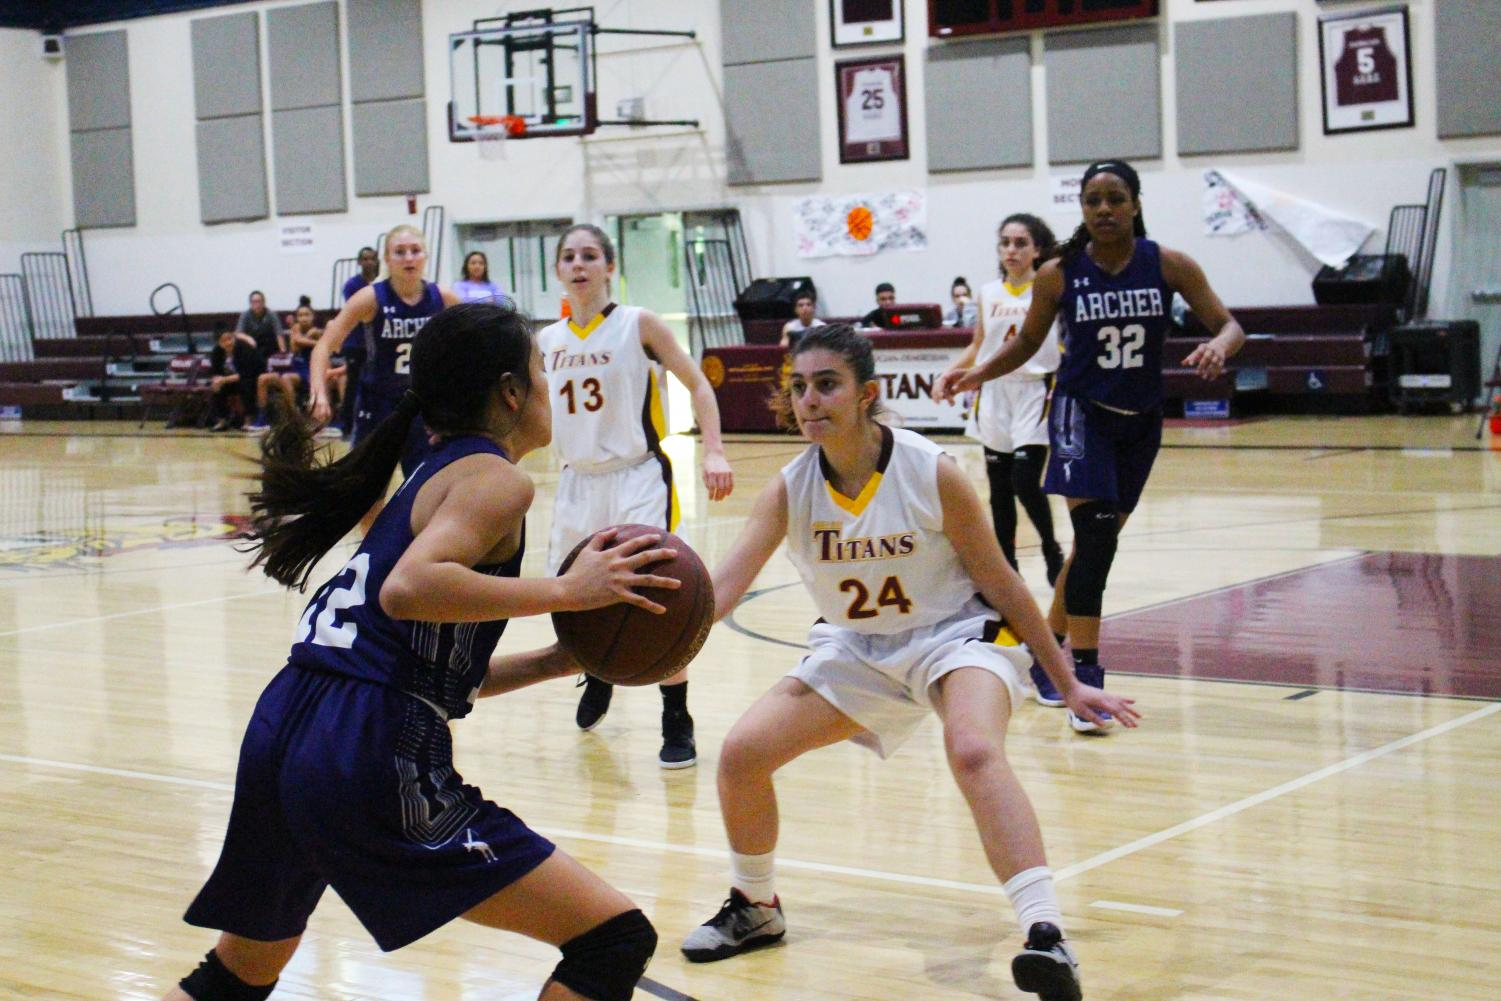 Co-captain Caitlin Chen '19 attempts to pass the ball during a previous game at AGBU on Jan. 18. Archer finished their season with a 16-12 record.